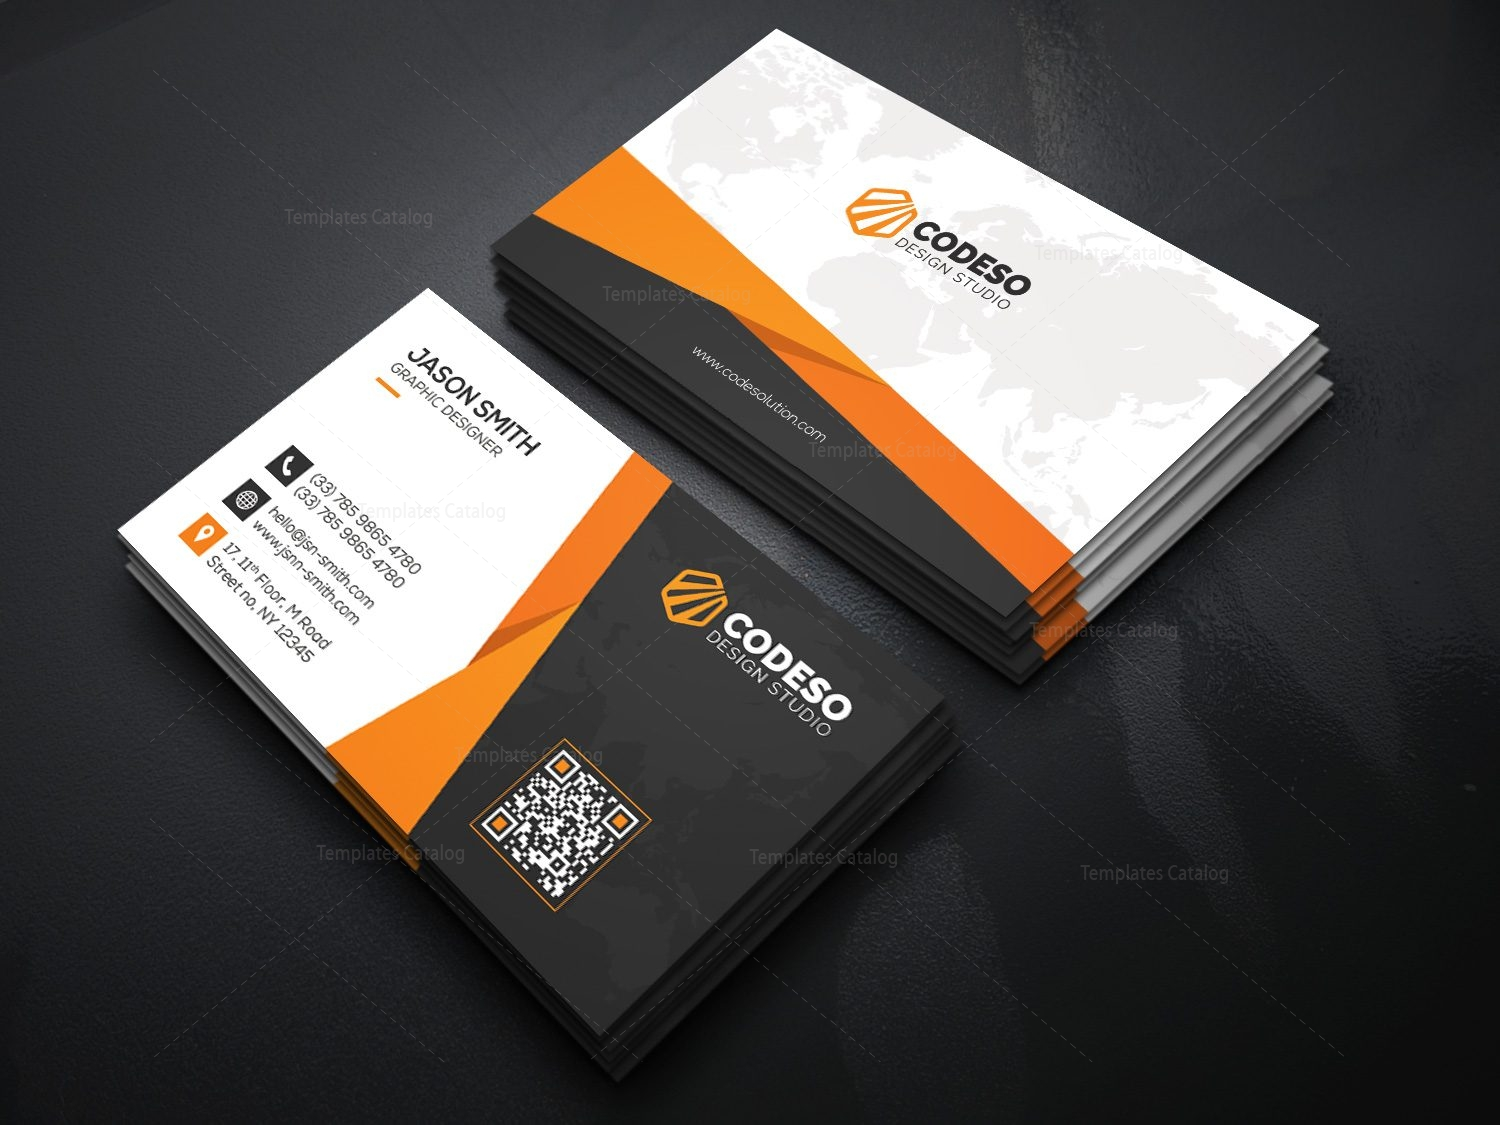 Modern Stylish Business Card Template 000523 - Template Catalog